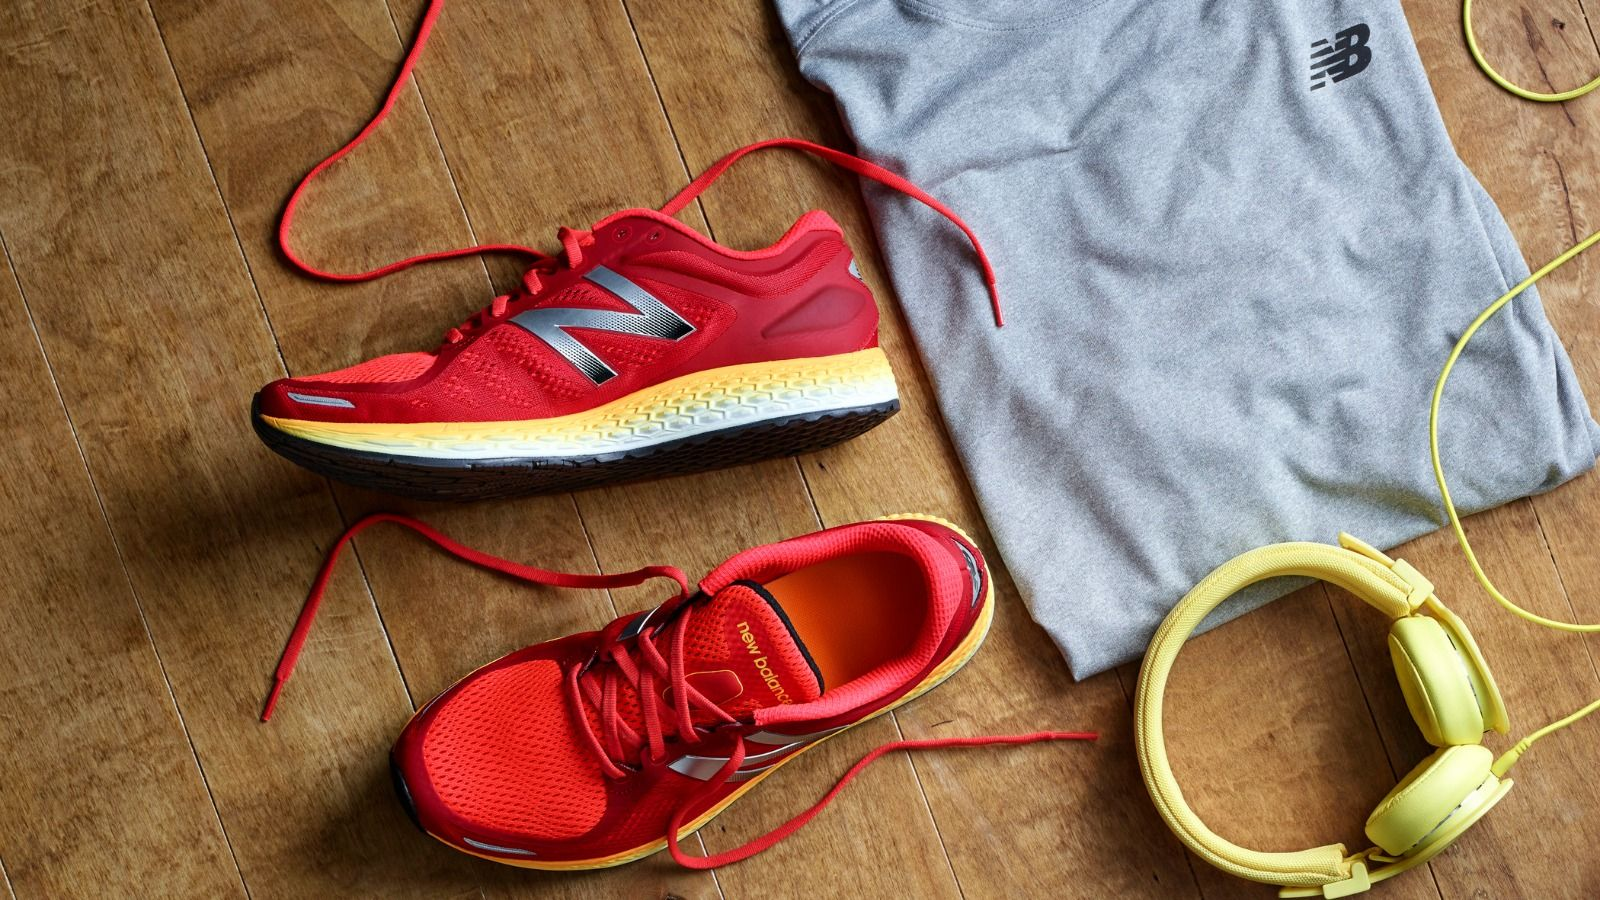 New Balance Gear Lending - Running Shoes